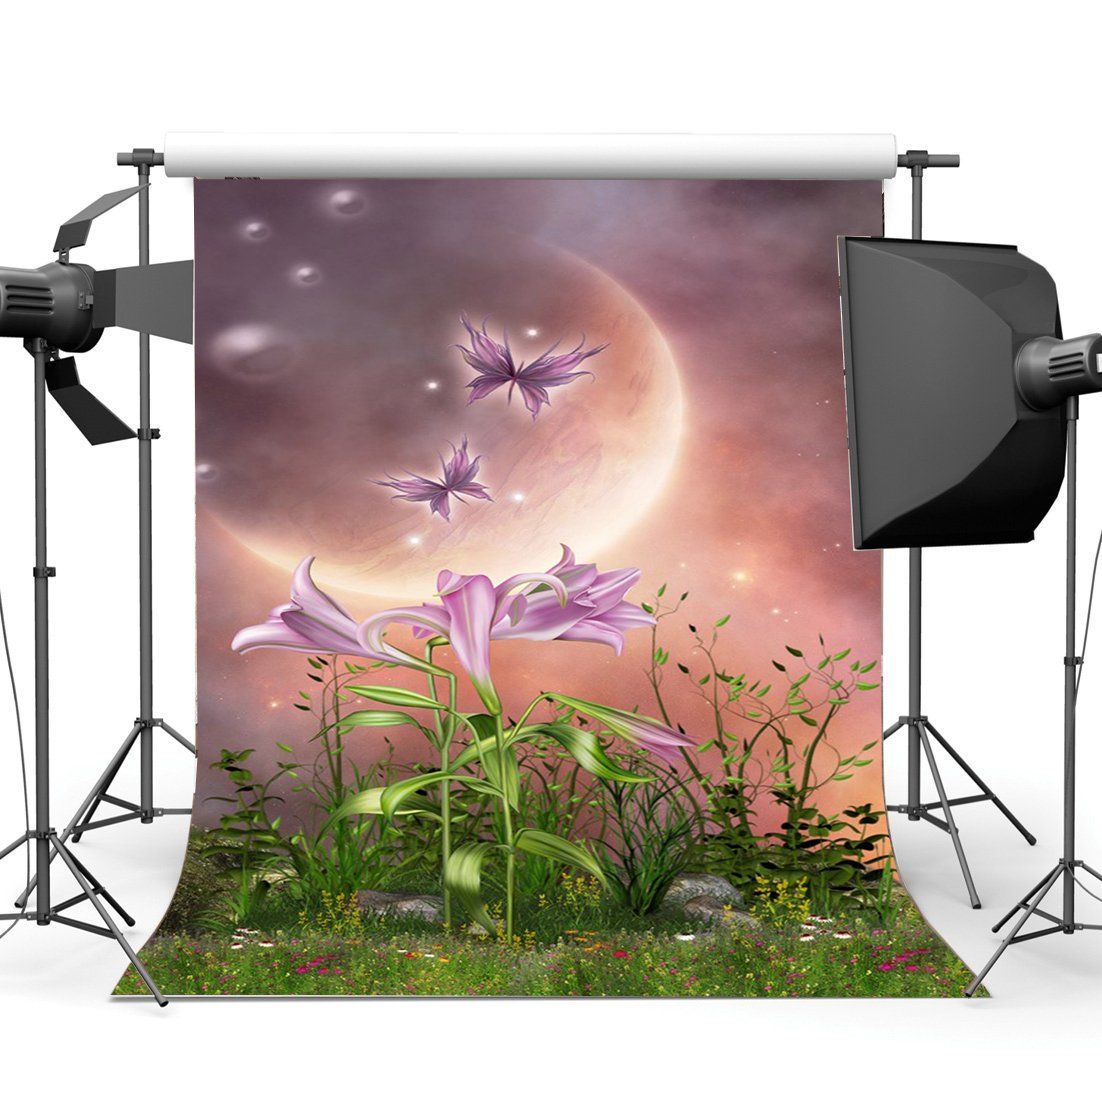 Photography Backdrop Dreamy World Fairy Tale Blooming Flowers Grass Field Bokeh Moon Night Fantasy Background-in Photo Studio Accessories from Consumer Electronics